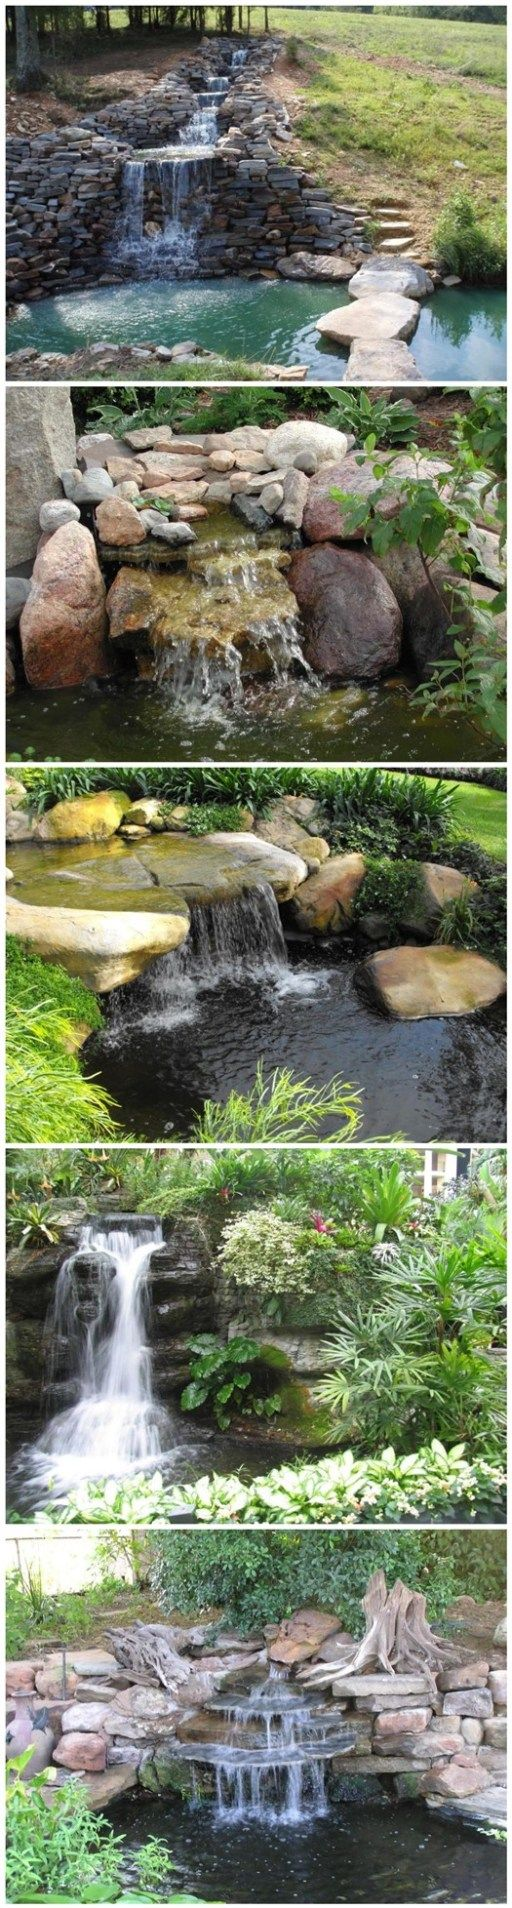 How to build a garden waterfall pond my blog dezdemon for Making ponds for a garden